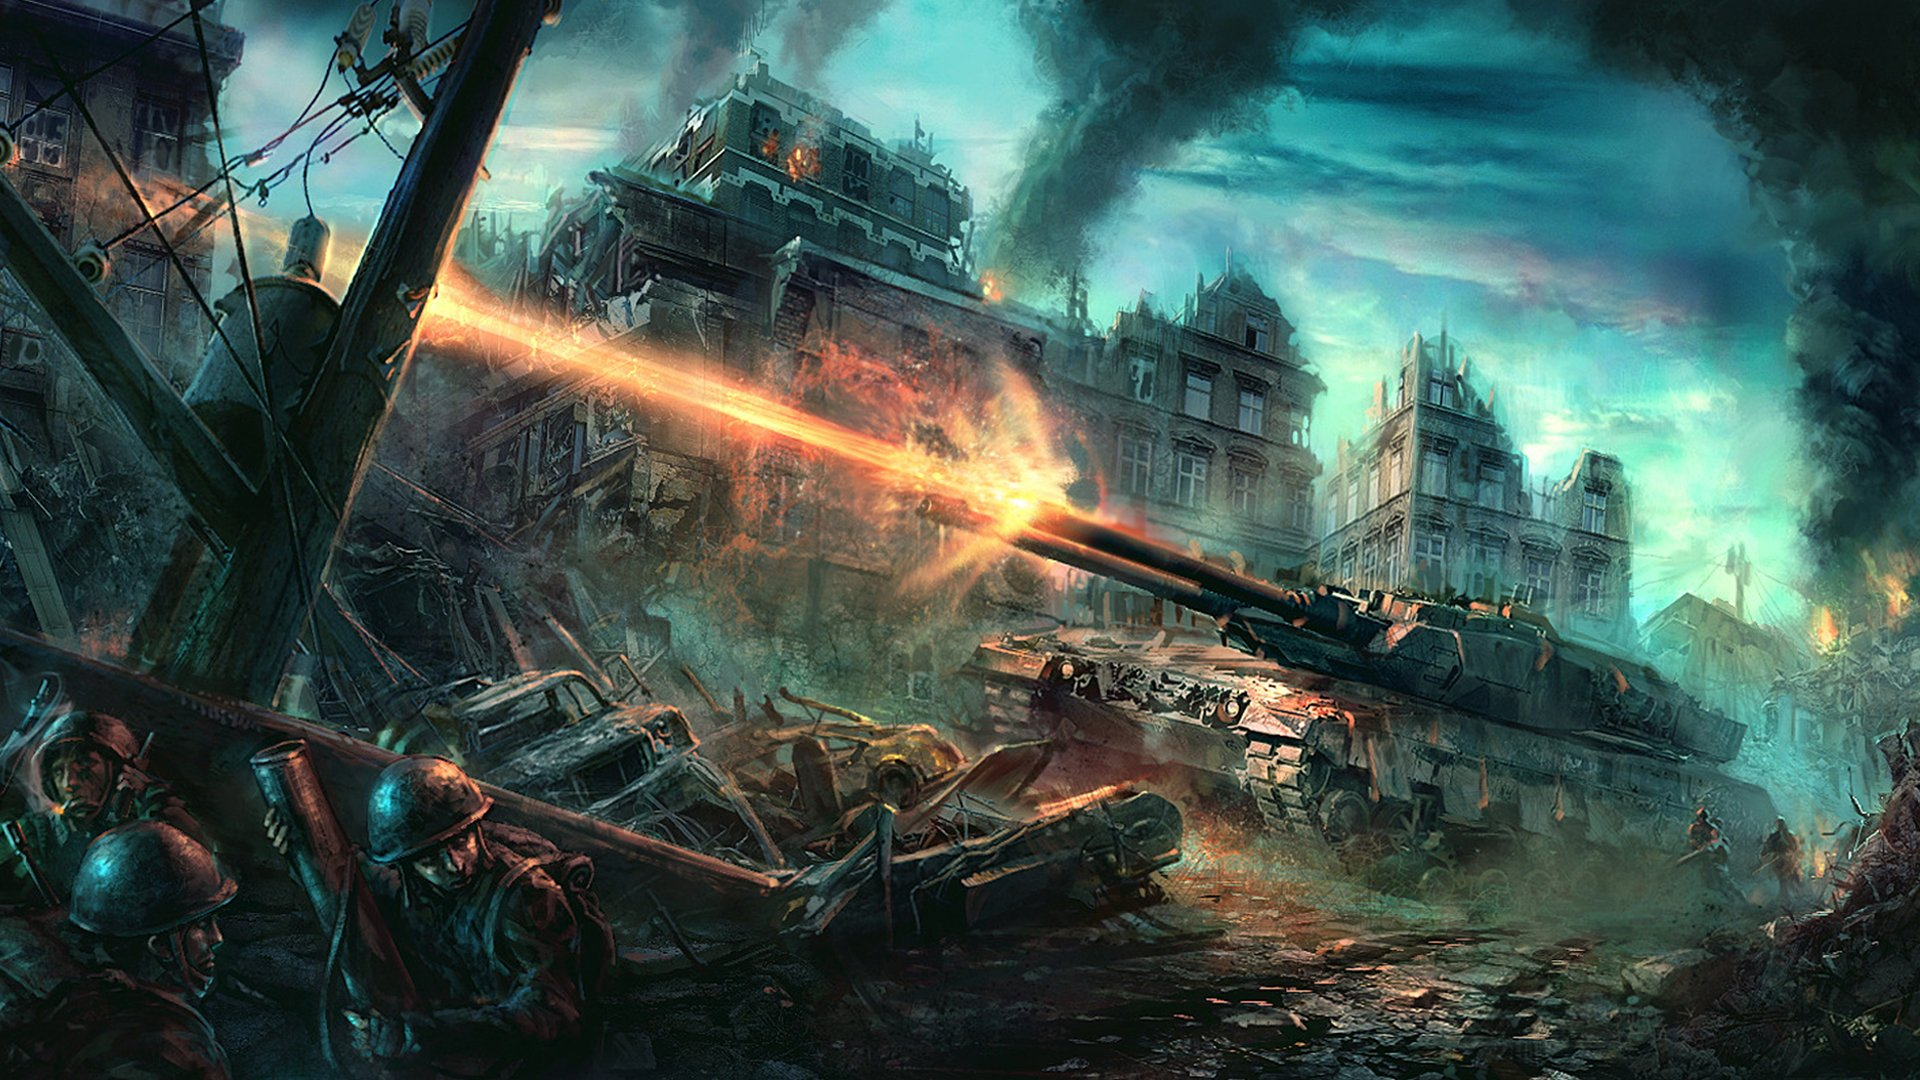 Camouflage Iphone Wallpaper World Of Tanks Full Hd Fond D 233 Cran And Arri 232 Re Plan